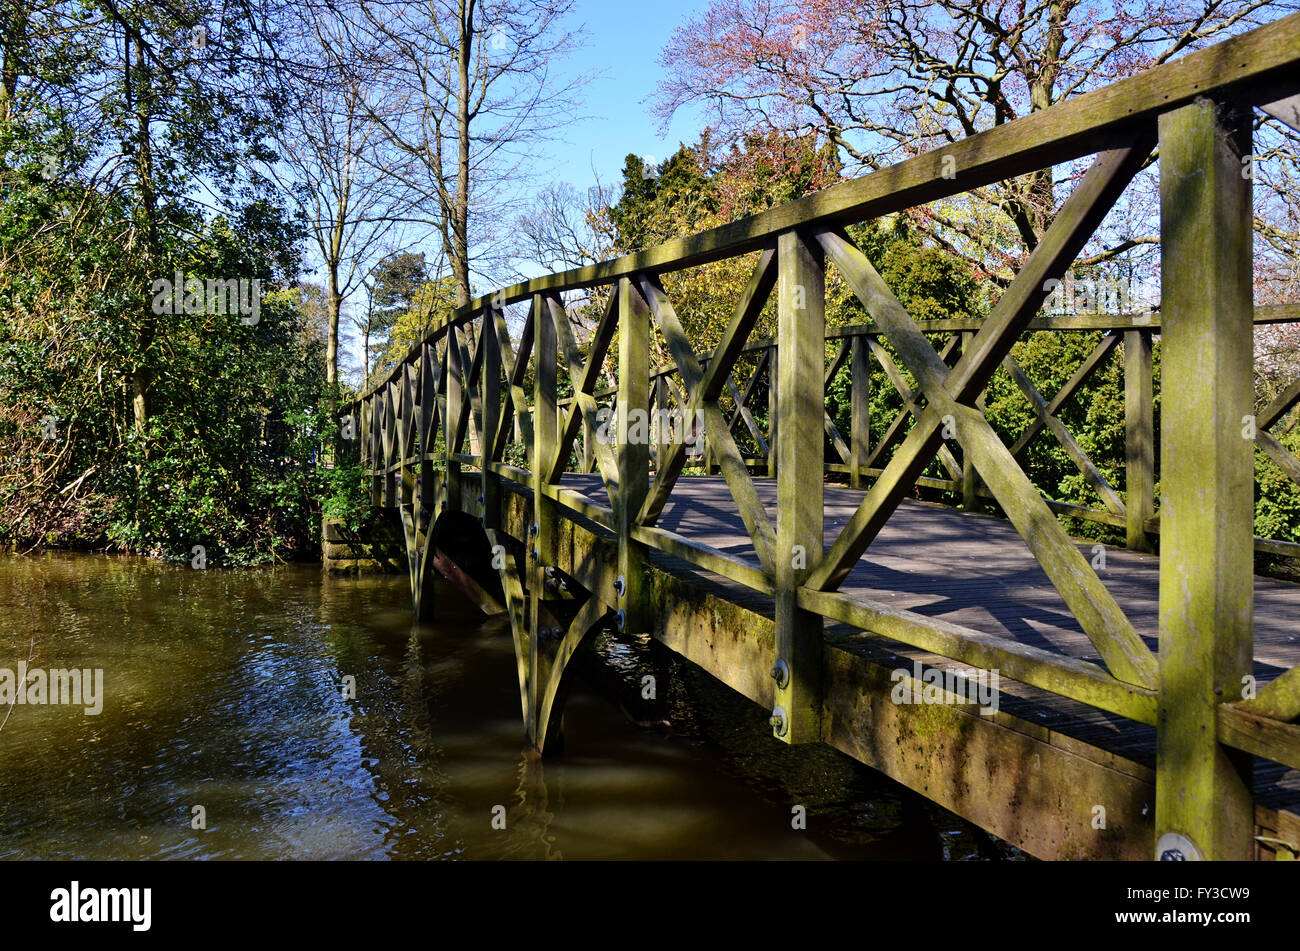 One of the many bridges in Birkenhead Park, Wirral. - Stock Image